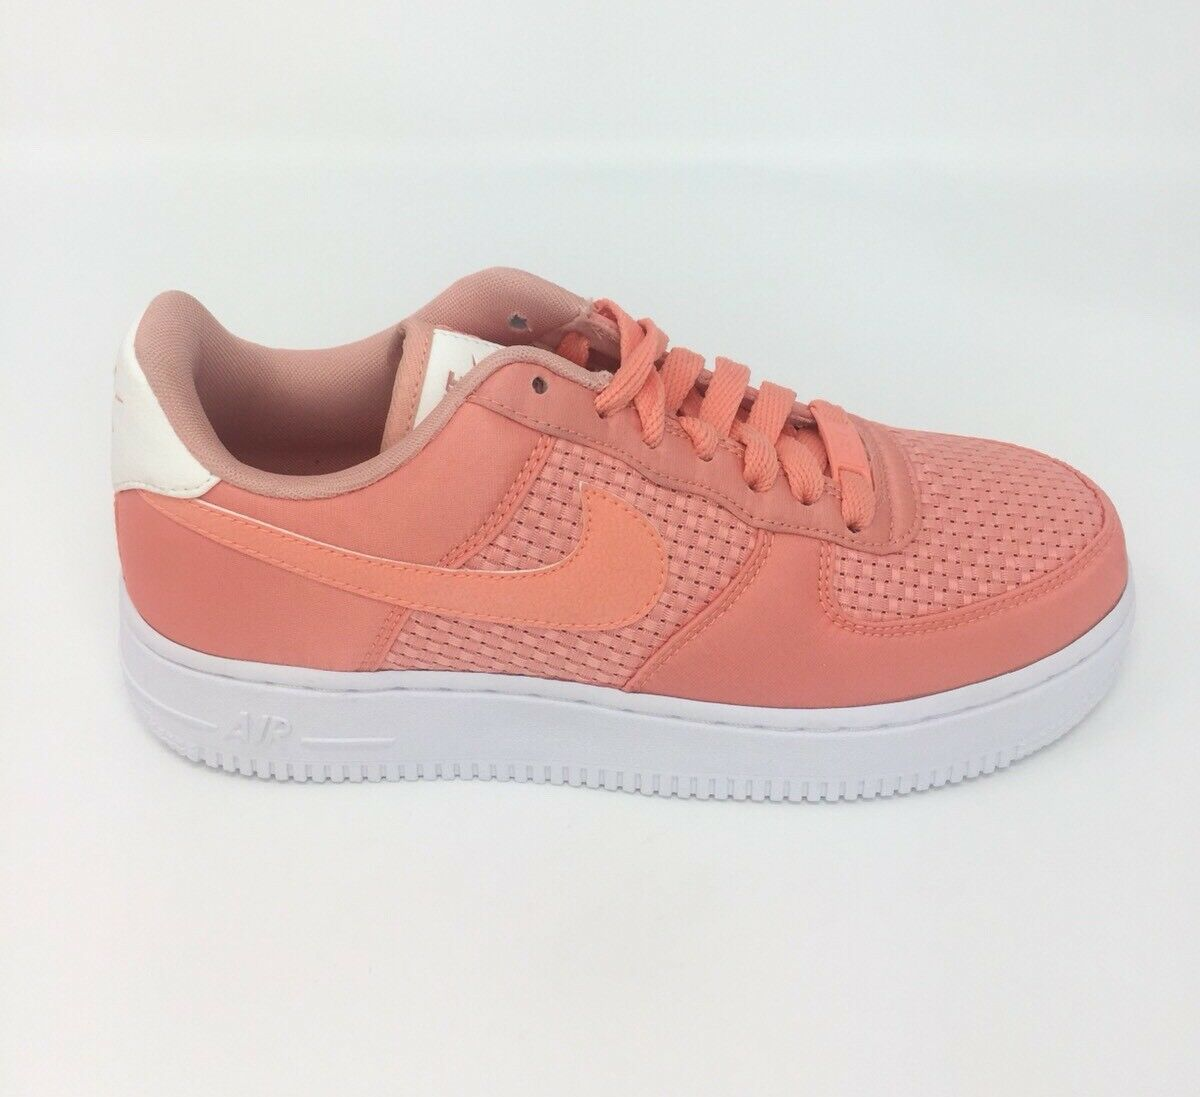 Nike Air Force 1 AF1 kvinnor kvinnor kvinnor Uk 4.5 Eur 38 Crimson Bliss Classic Sneeaker ny  Lagra